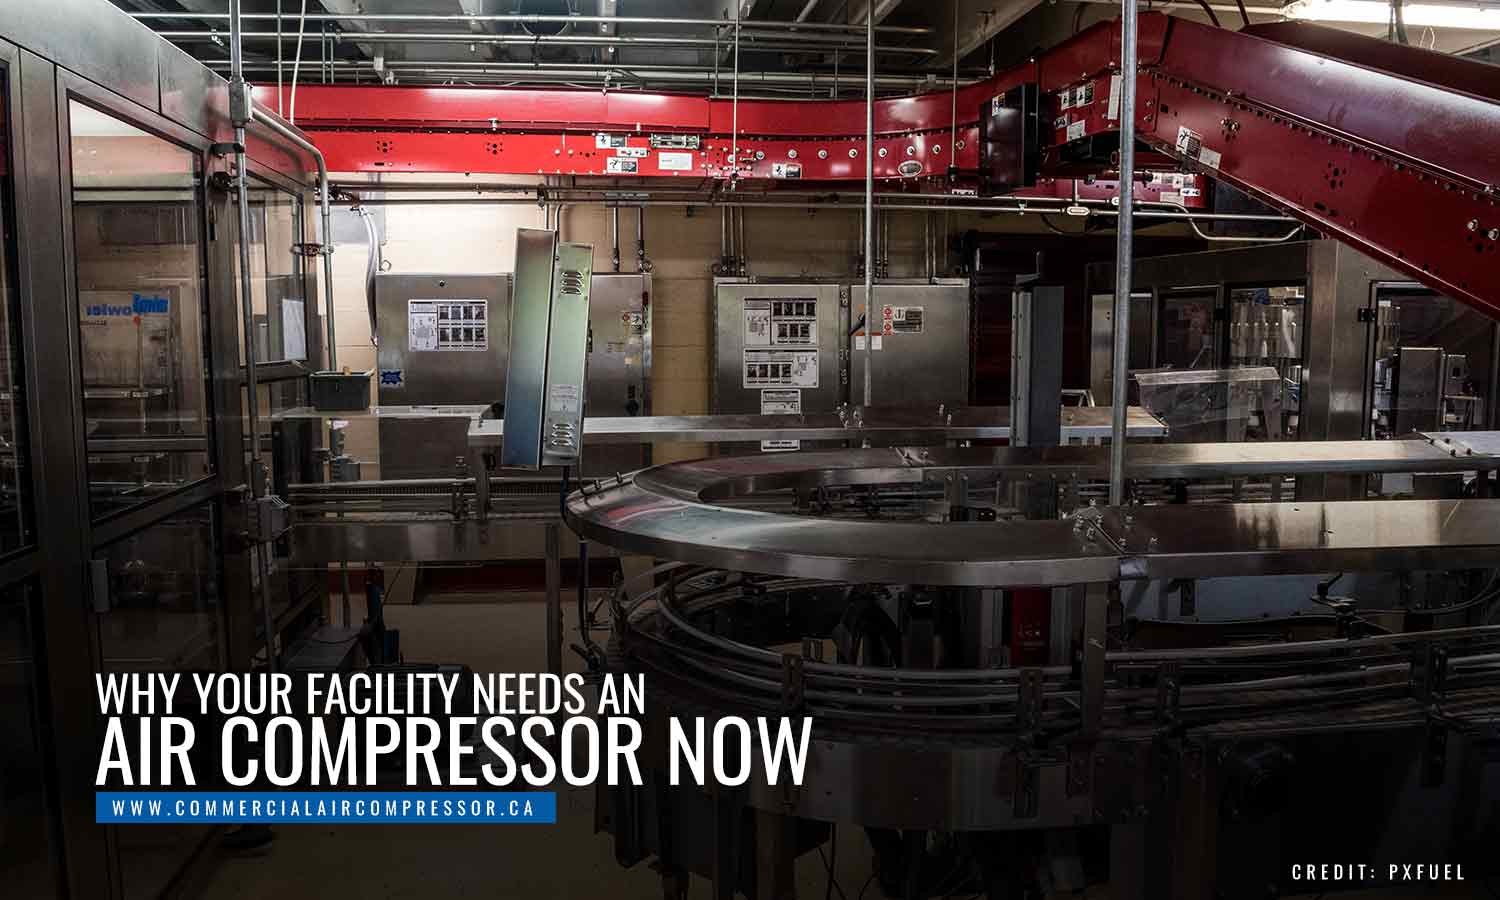 Why Your Facility Needs an Air Compressor Now